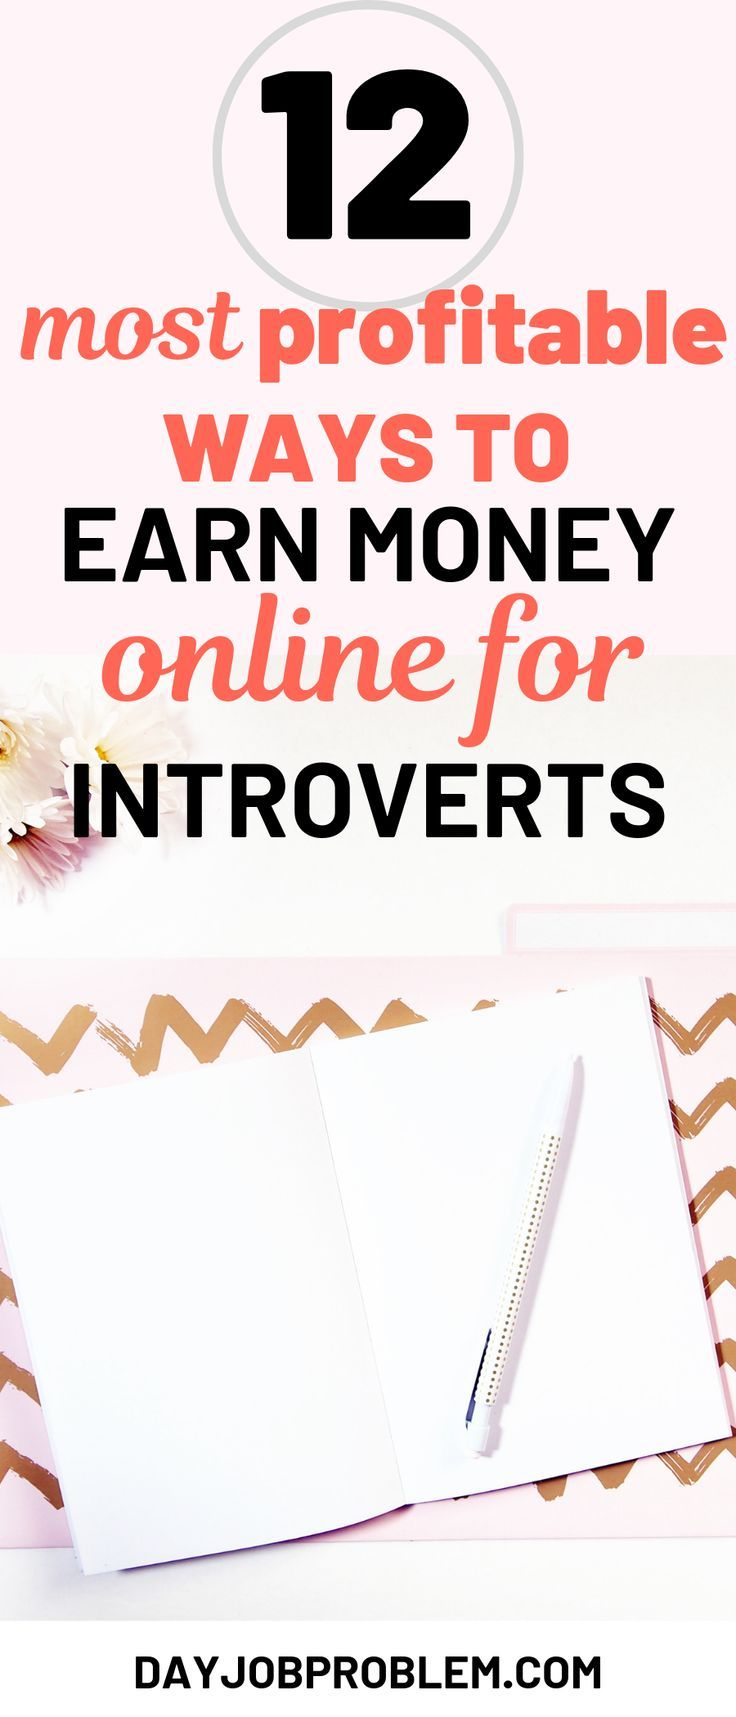 12 Most Profitable Ways to Earn Money Online for